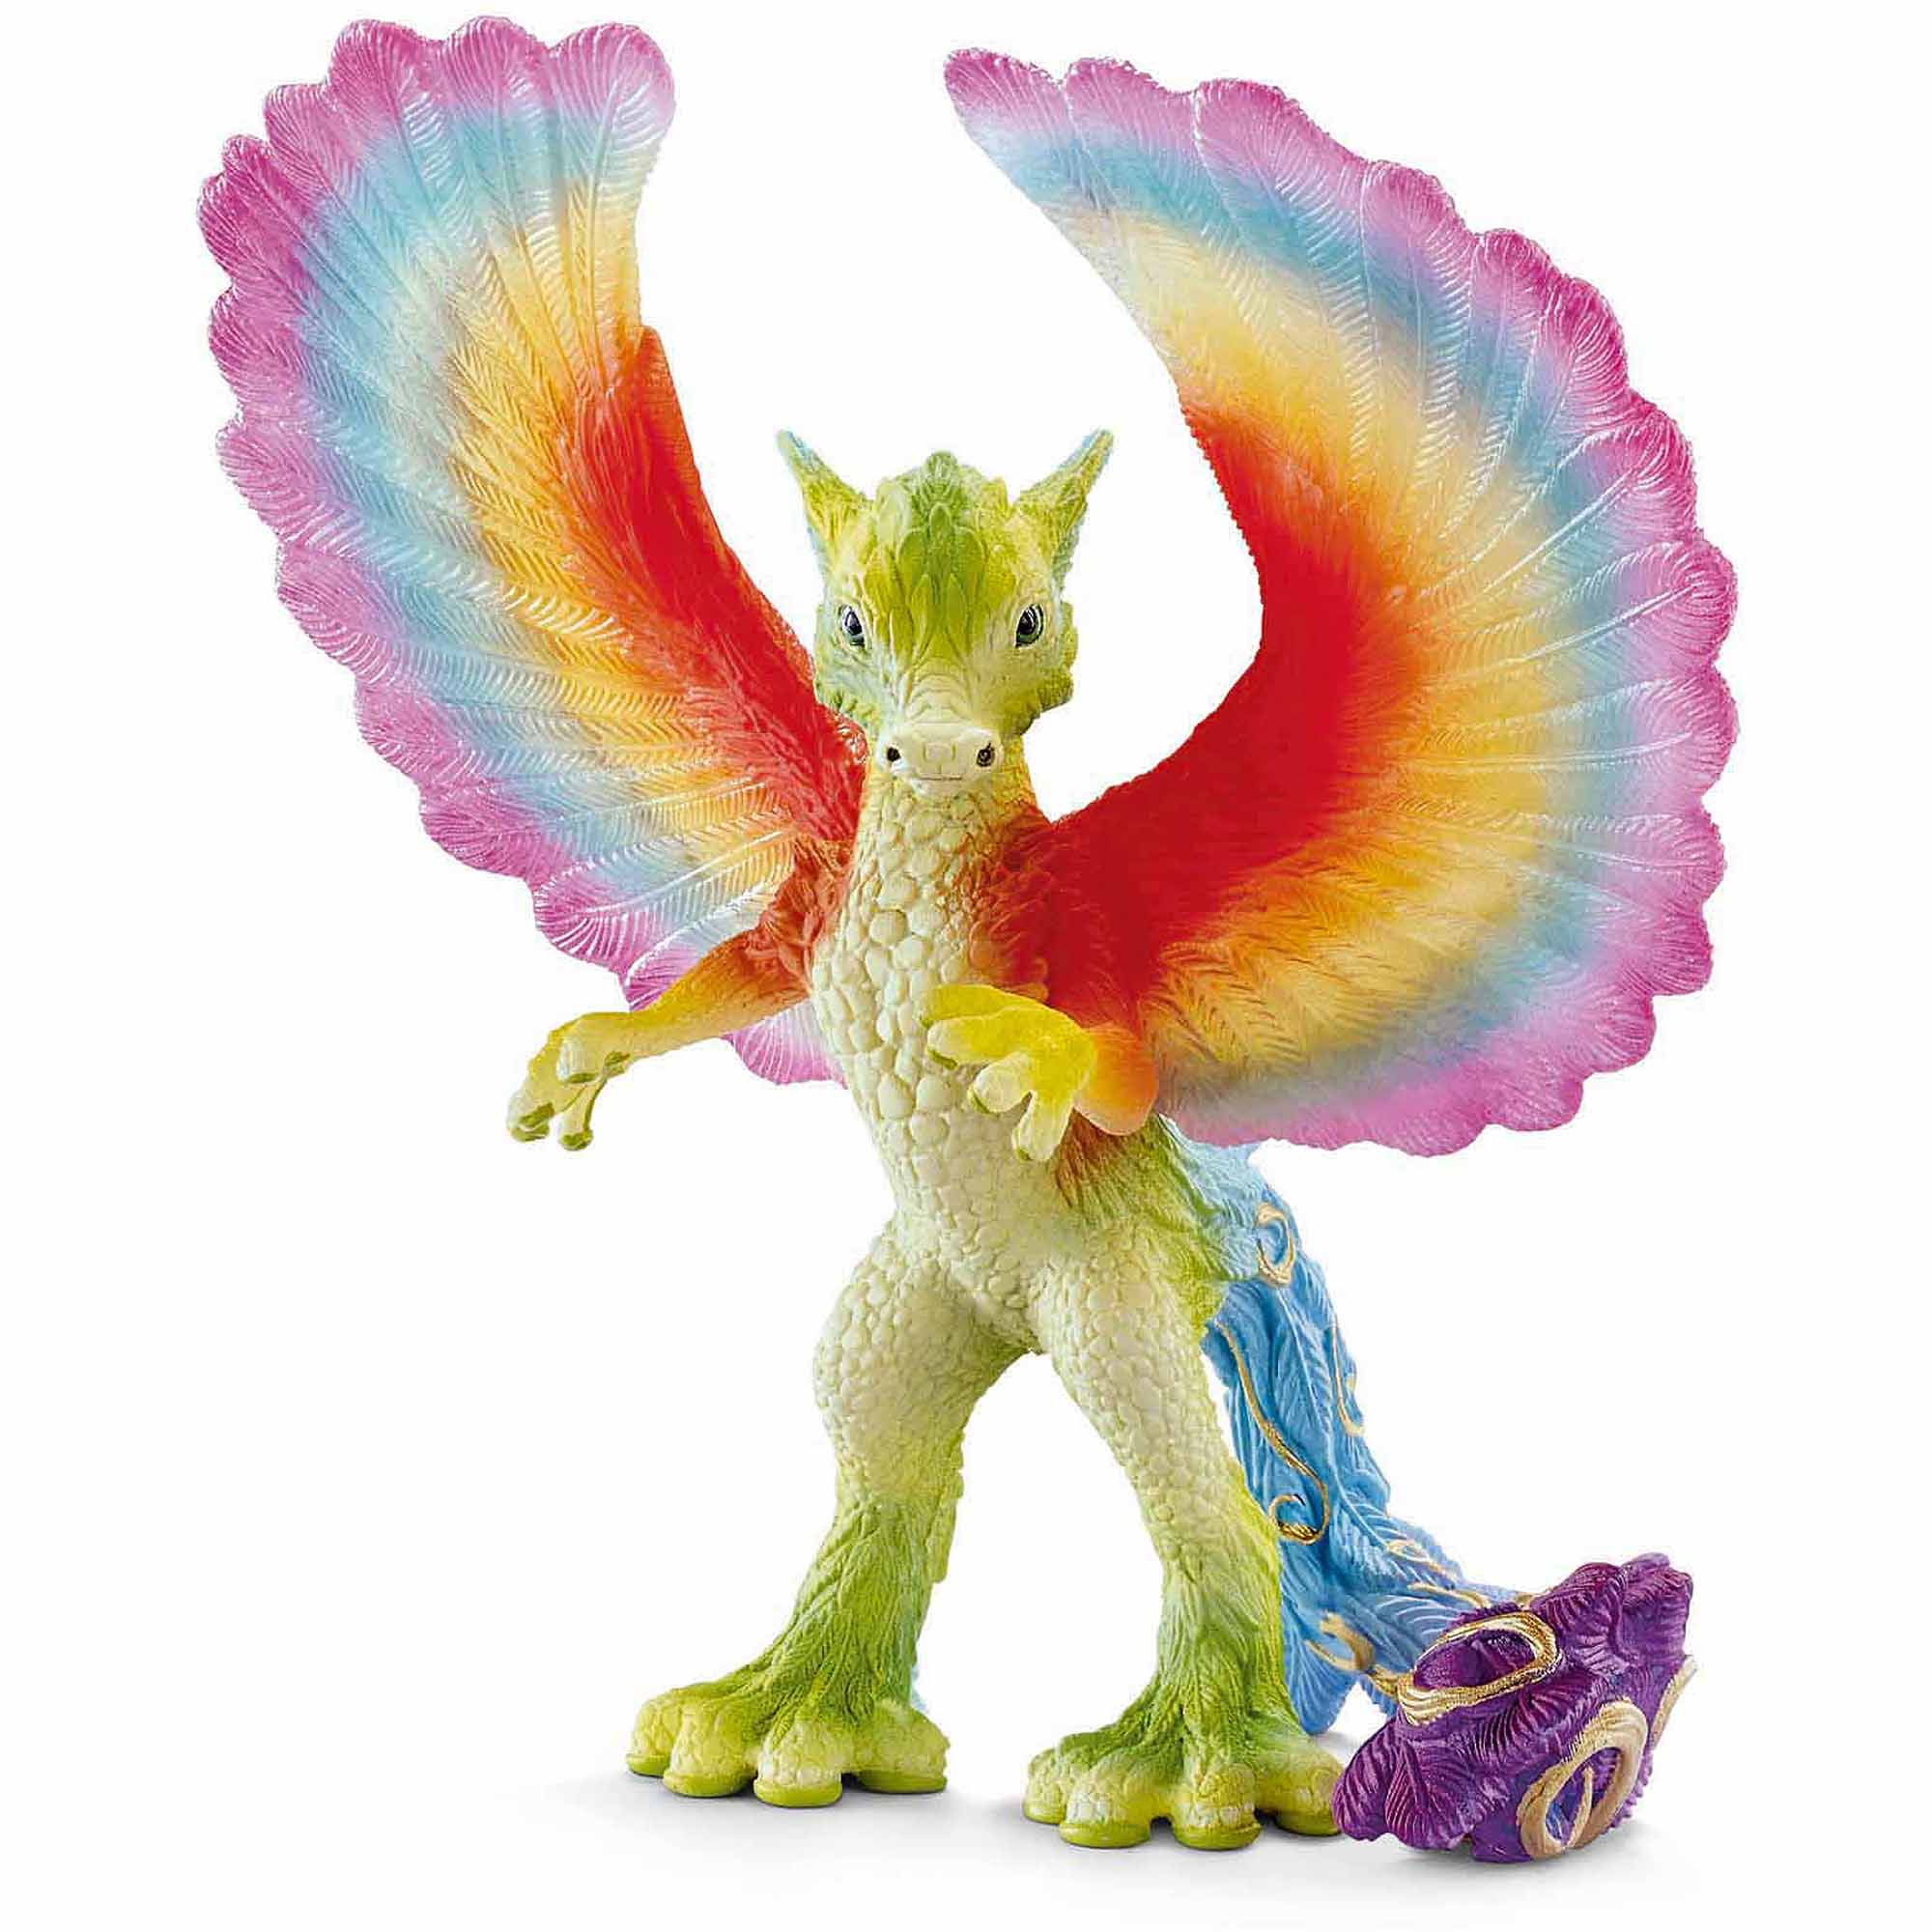 Schleich Damarai Toy Fairy Elf Toy